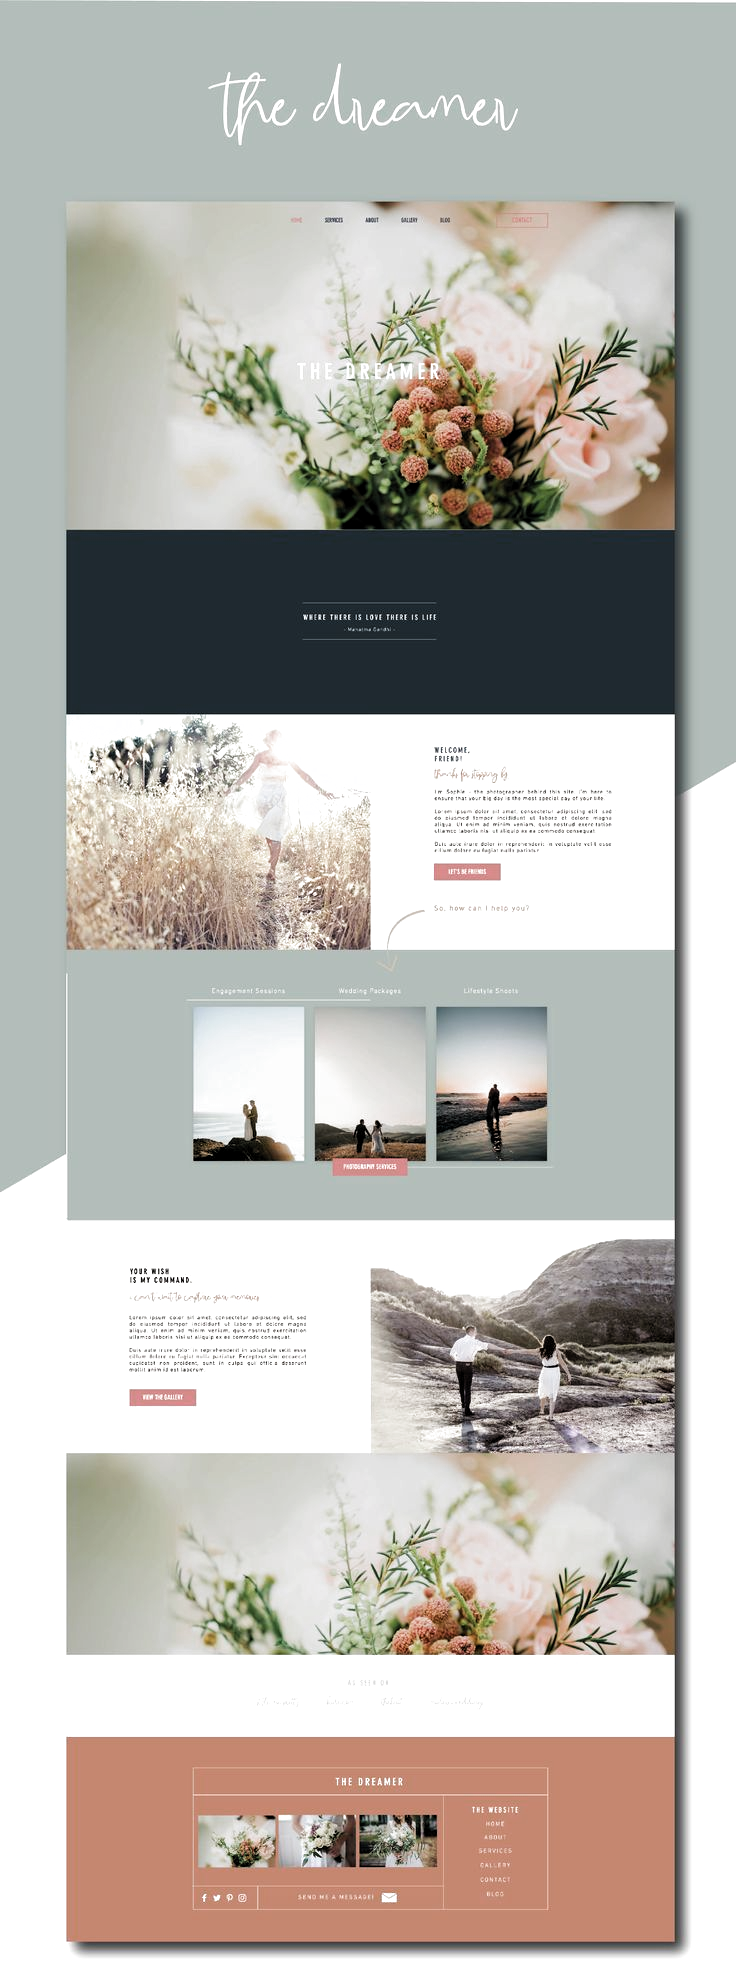 Pre Made Wix Website Design Are You A Photographer This Wix Website Template Is Perfect For You Beautiful M In 2020 Website Design Webshop Design Website Templates